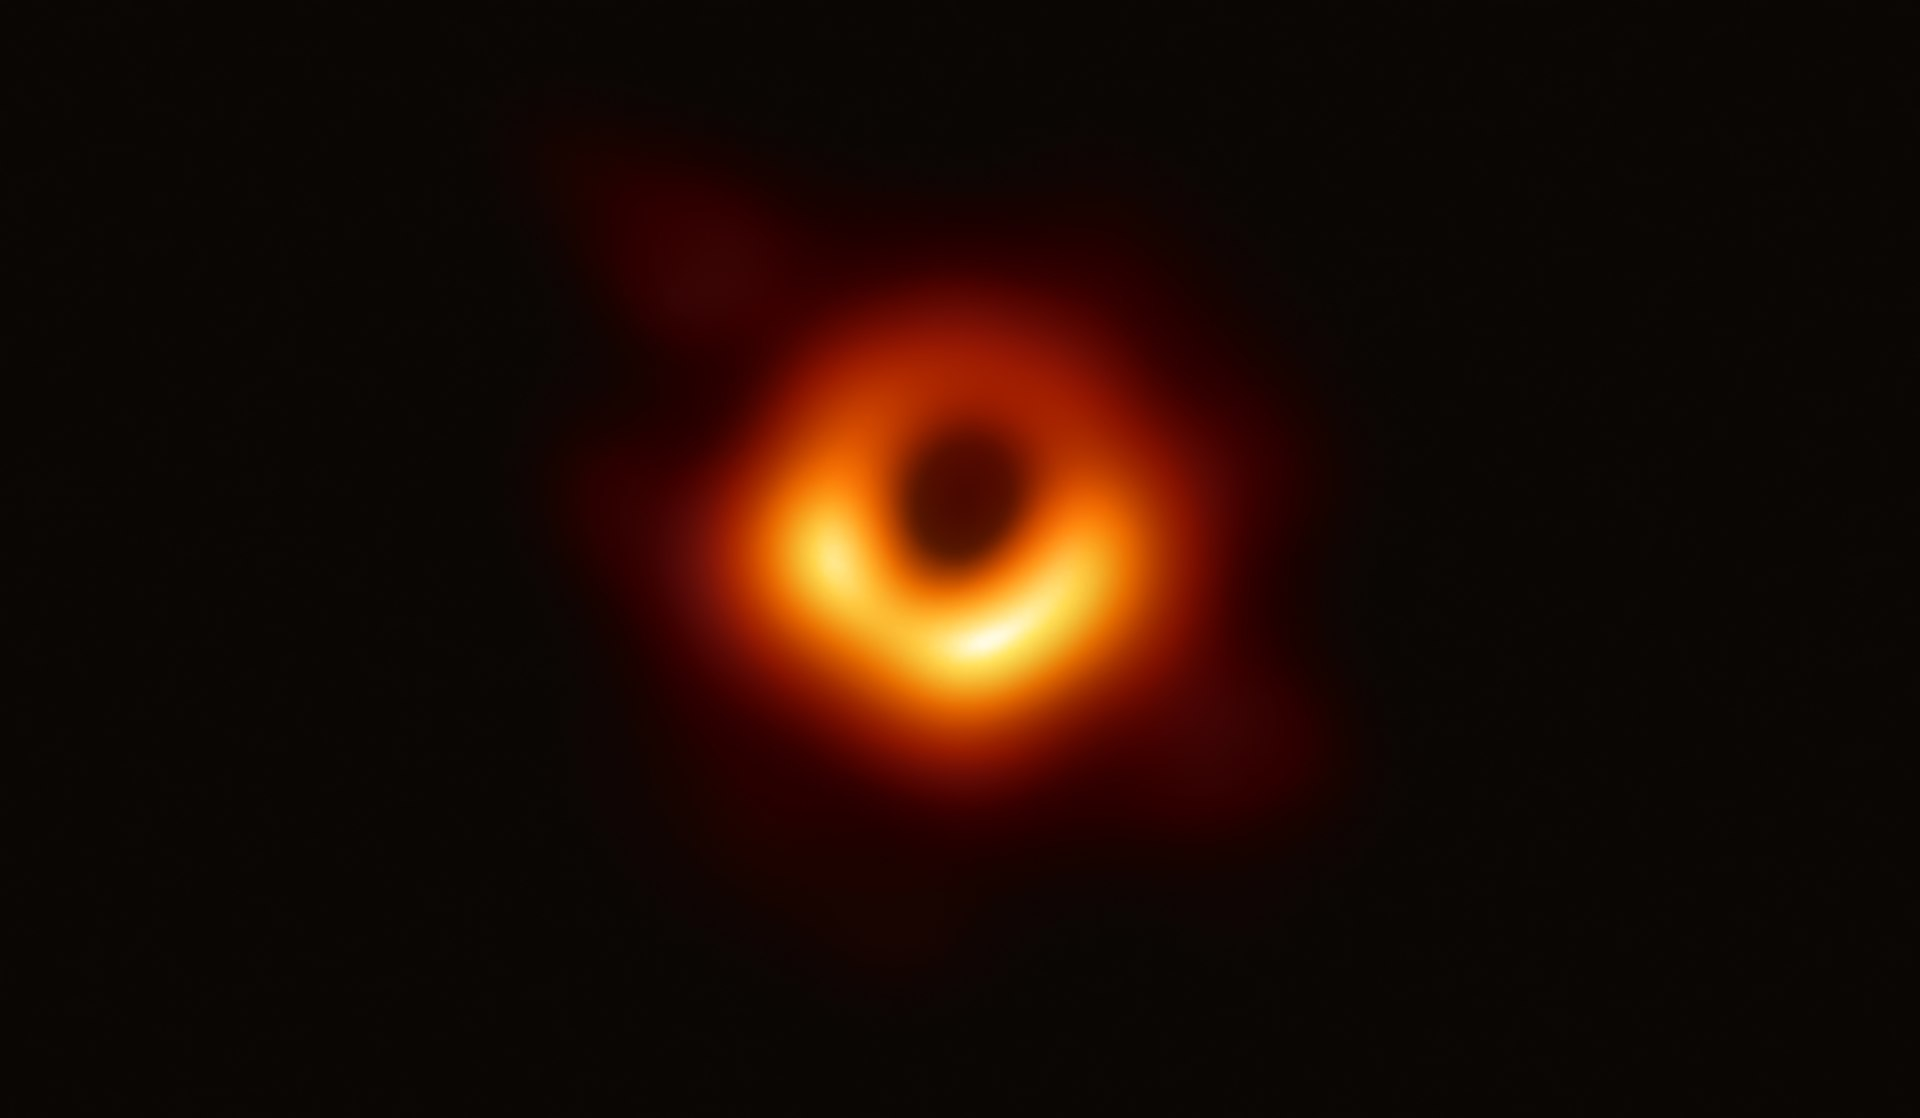 Black hole Messier 87